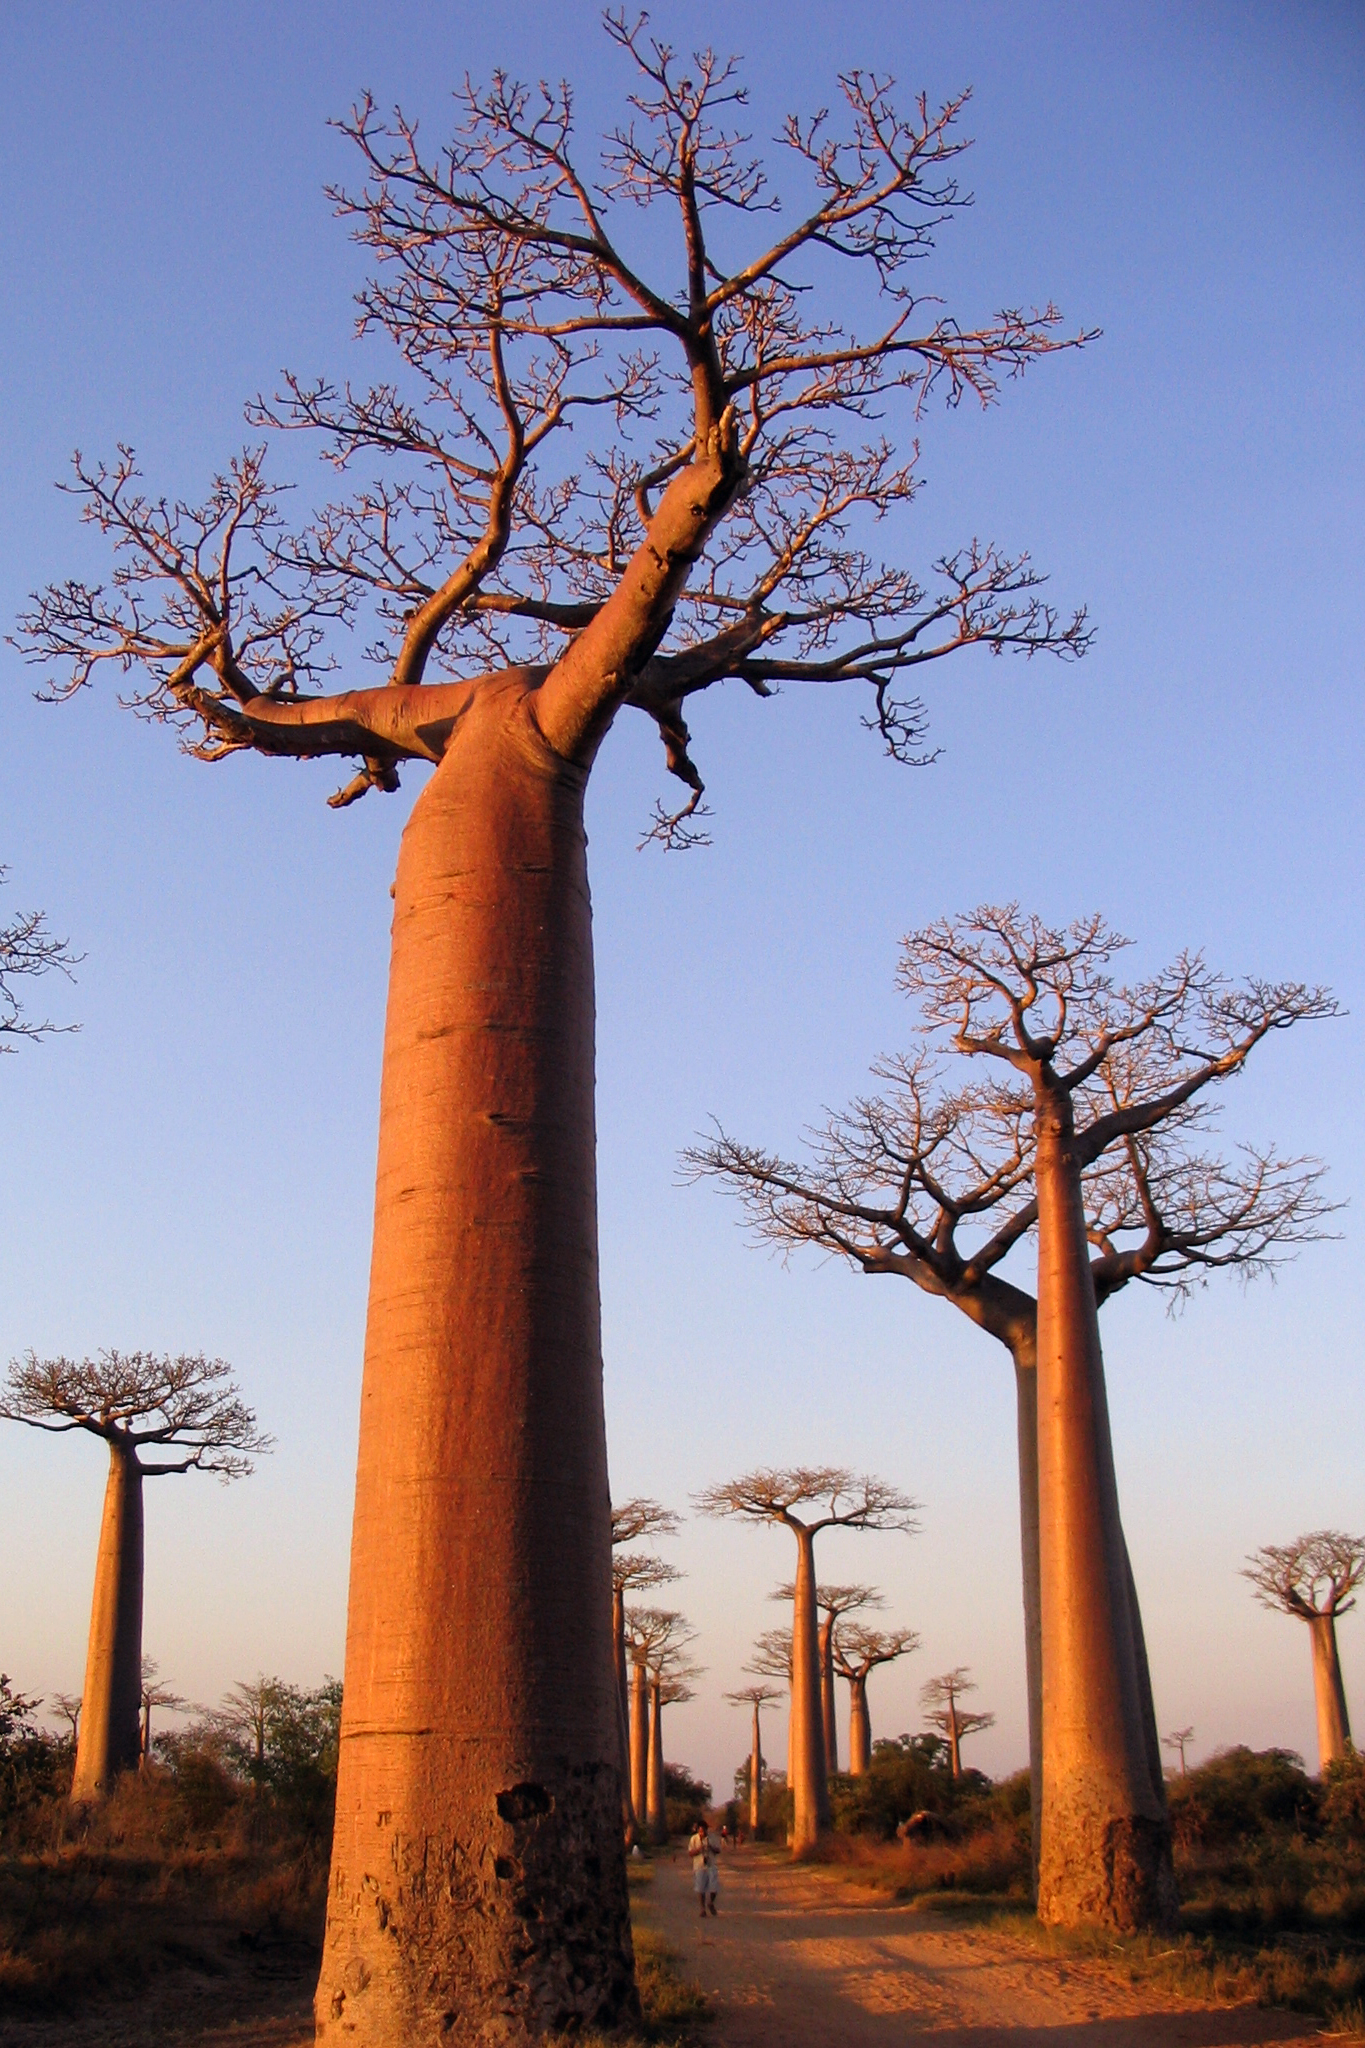 Baobabs trees along the prominent avenue in madagascar